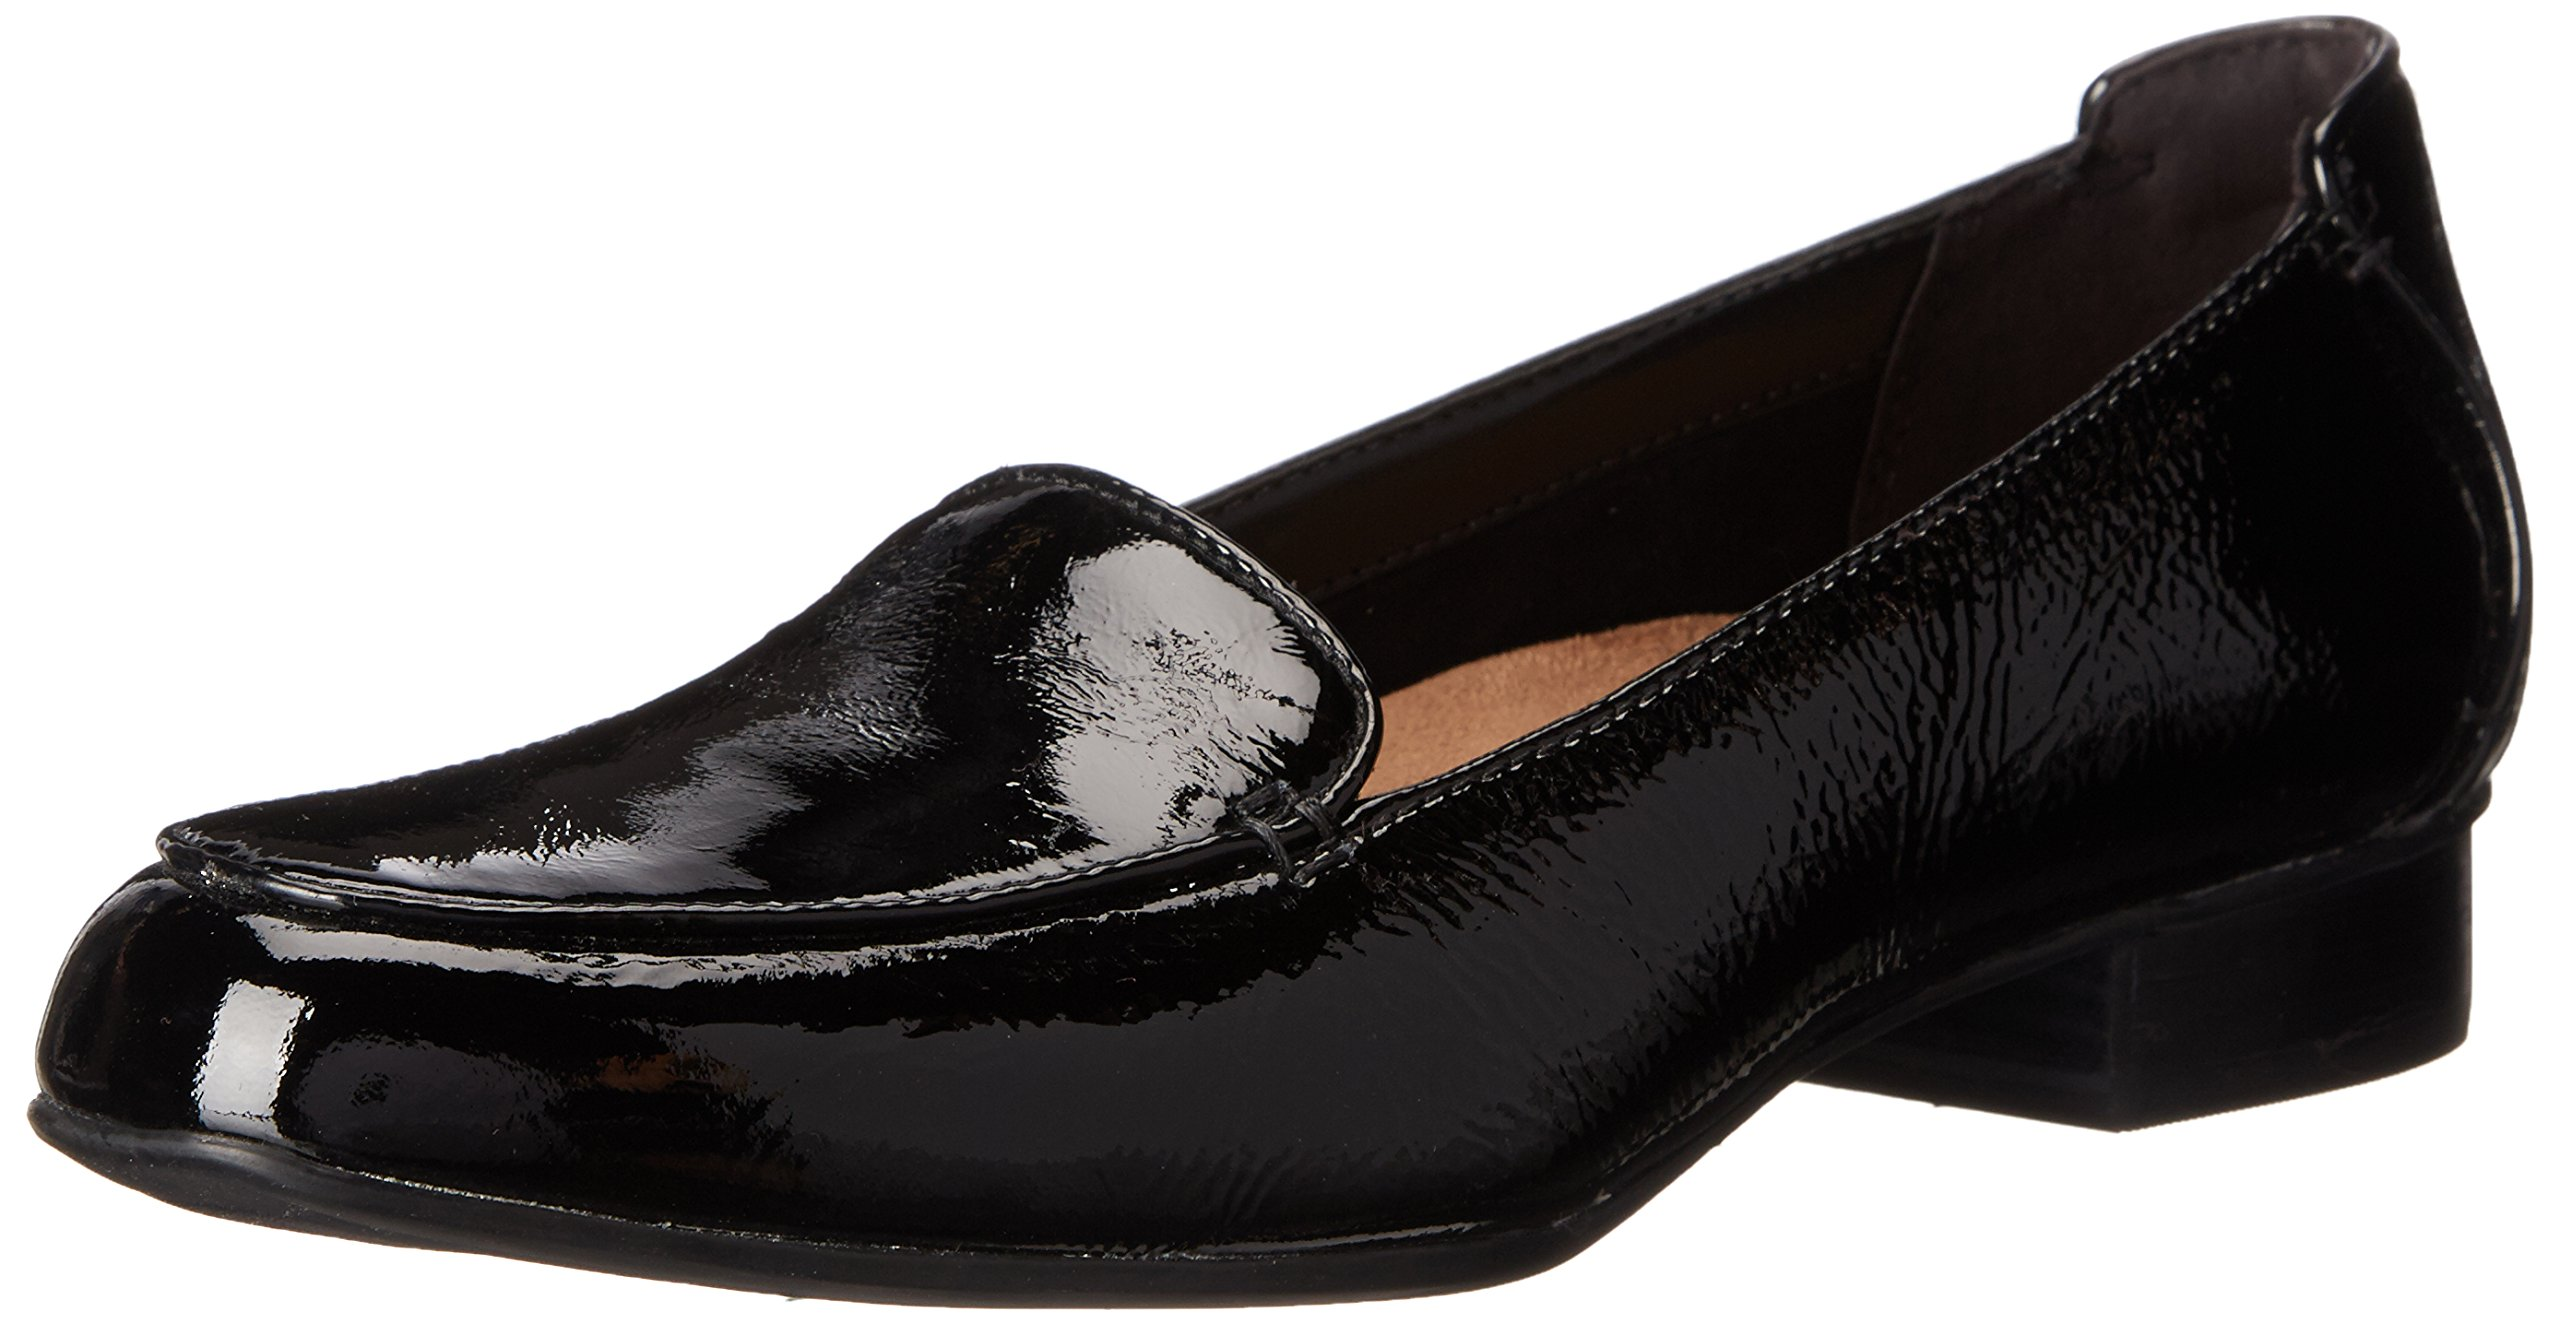 Clarks Women's Keesha Luca Shoe, Black Patent Leather, 8 M US